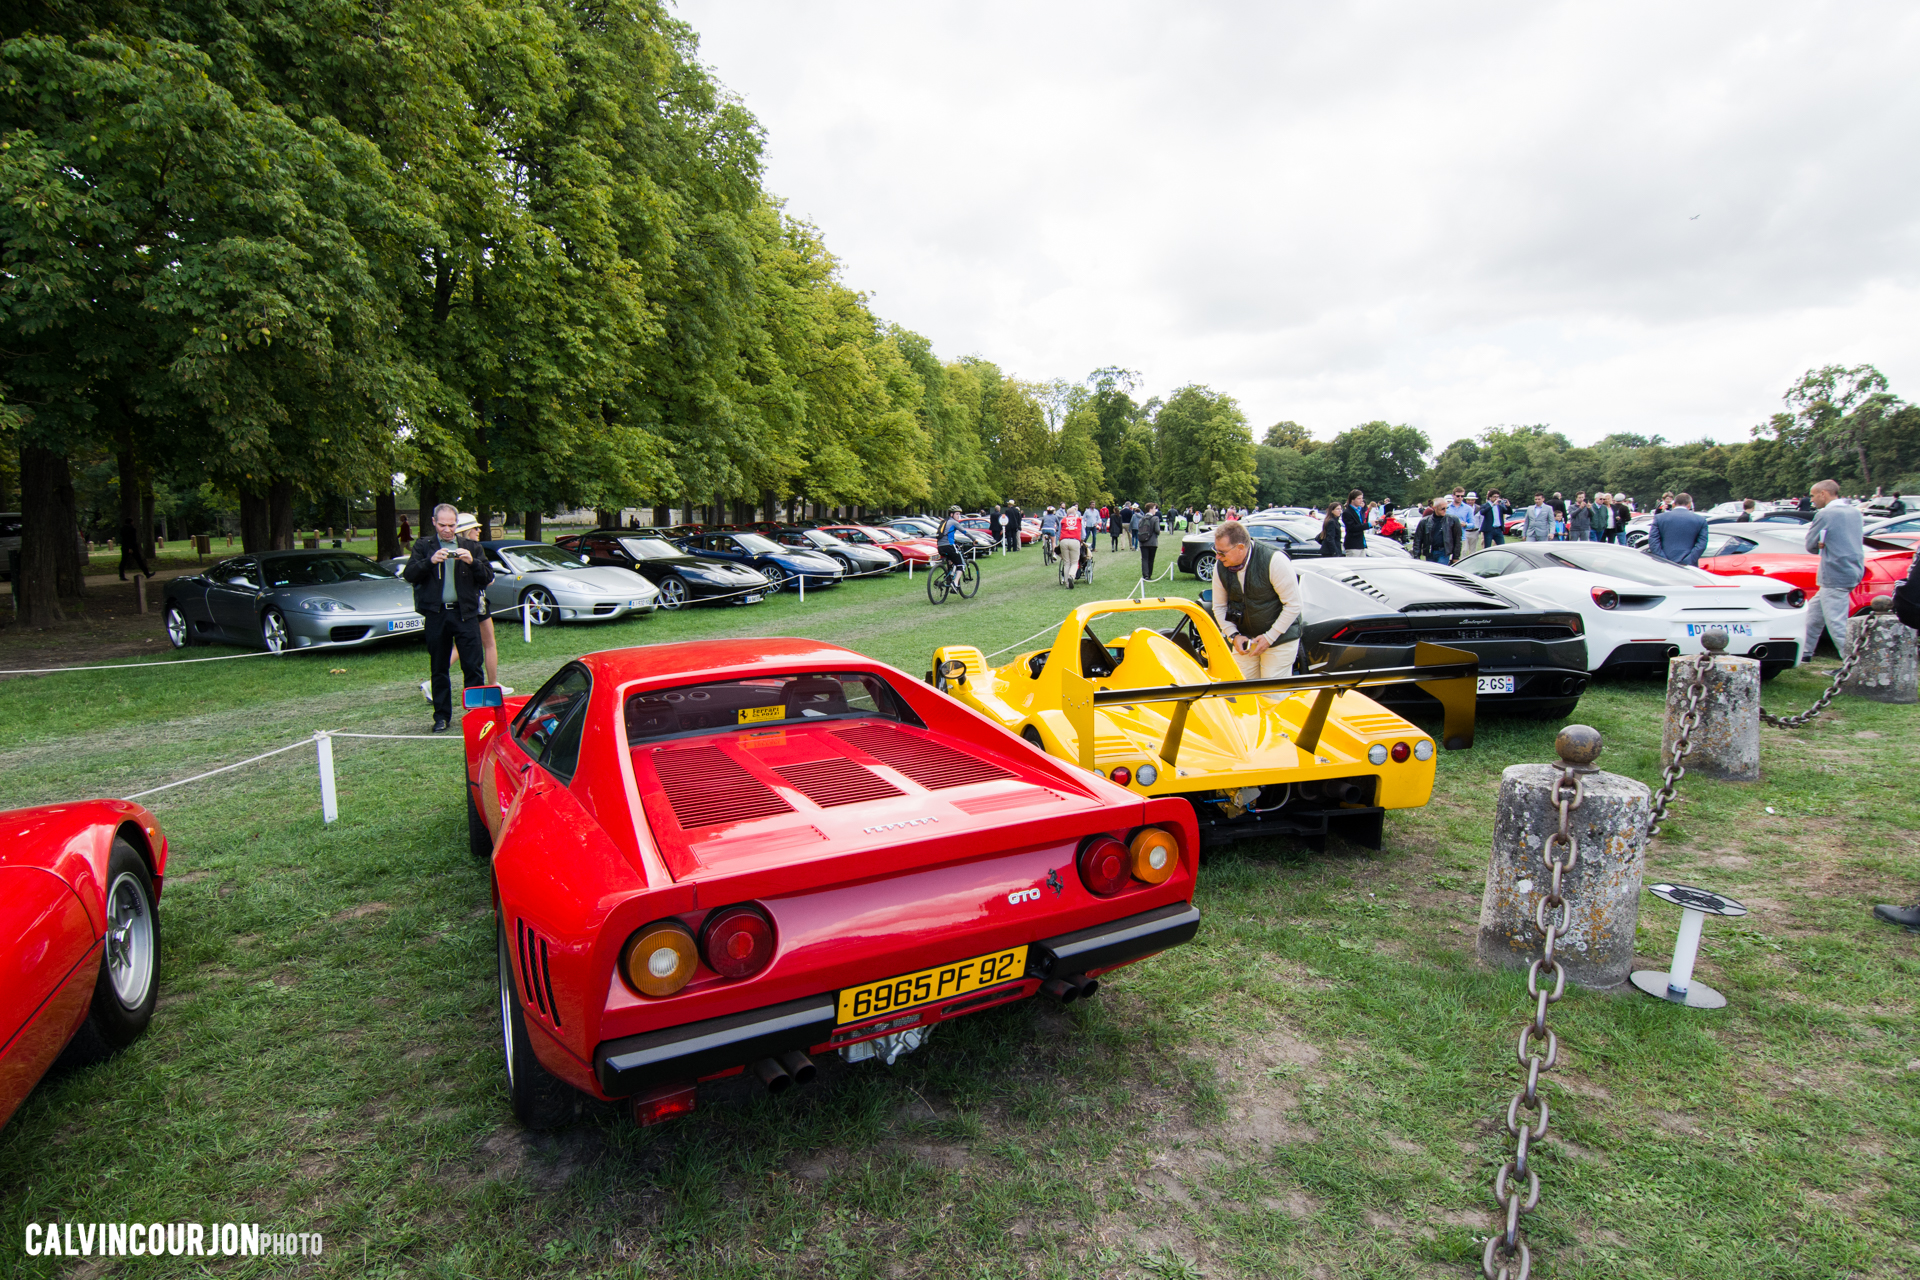 parking Ferrari - Chantilly 2015 – photo Calvin Courjon